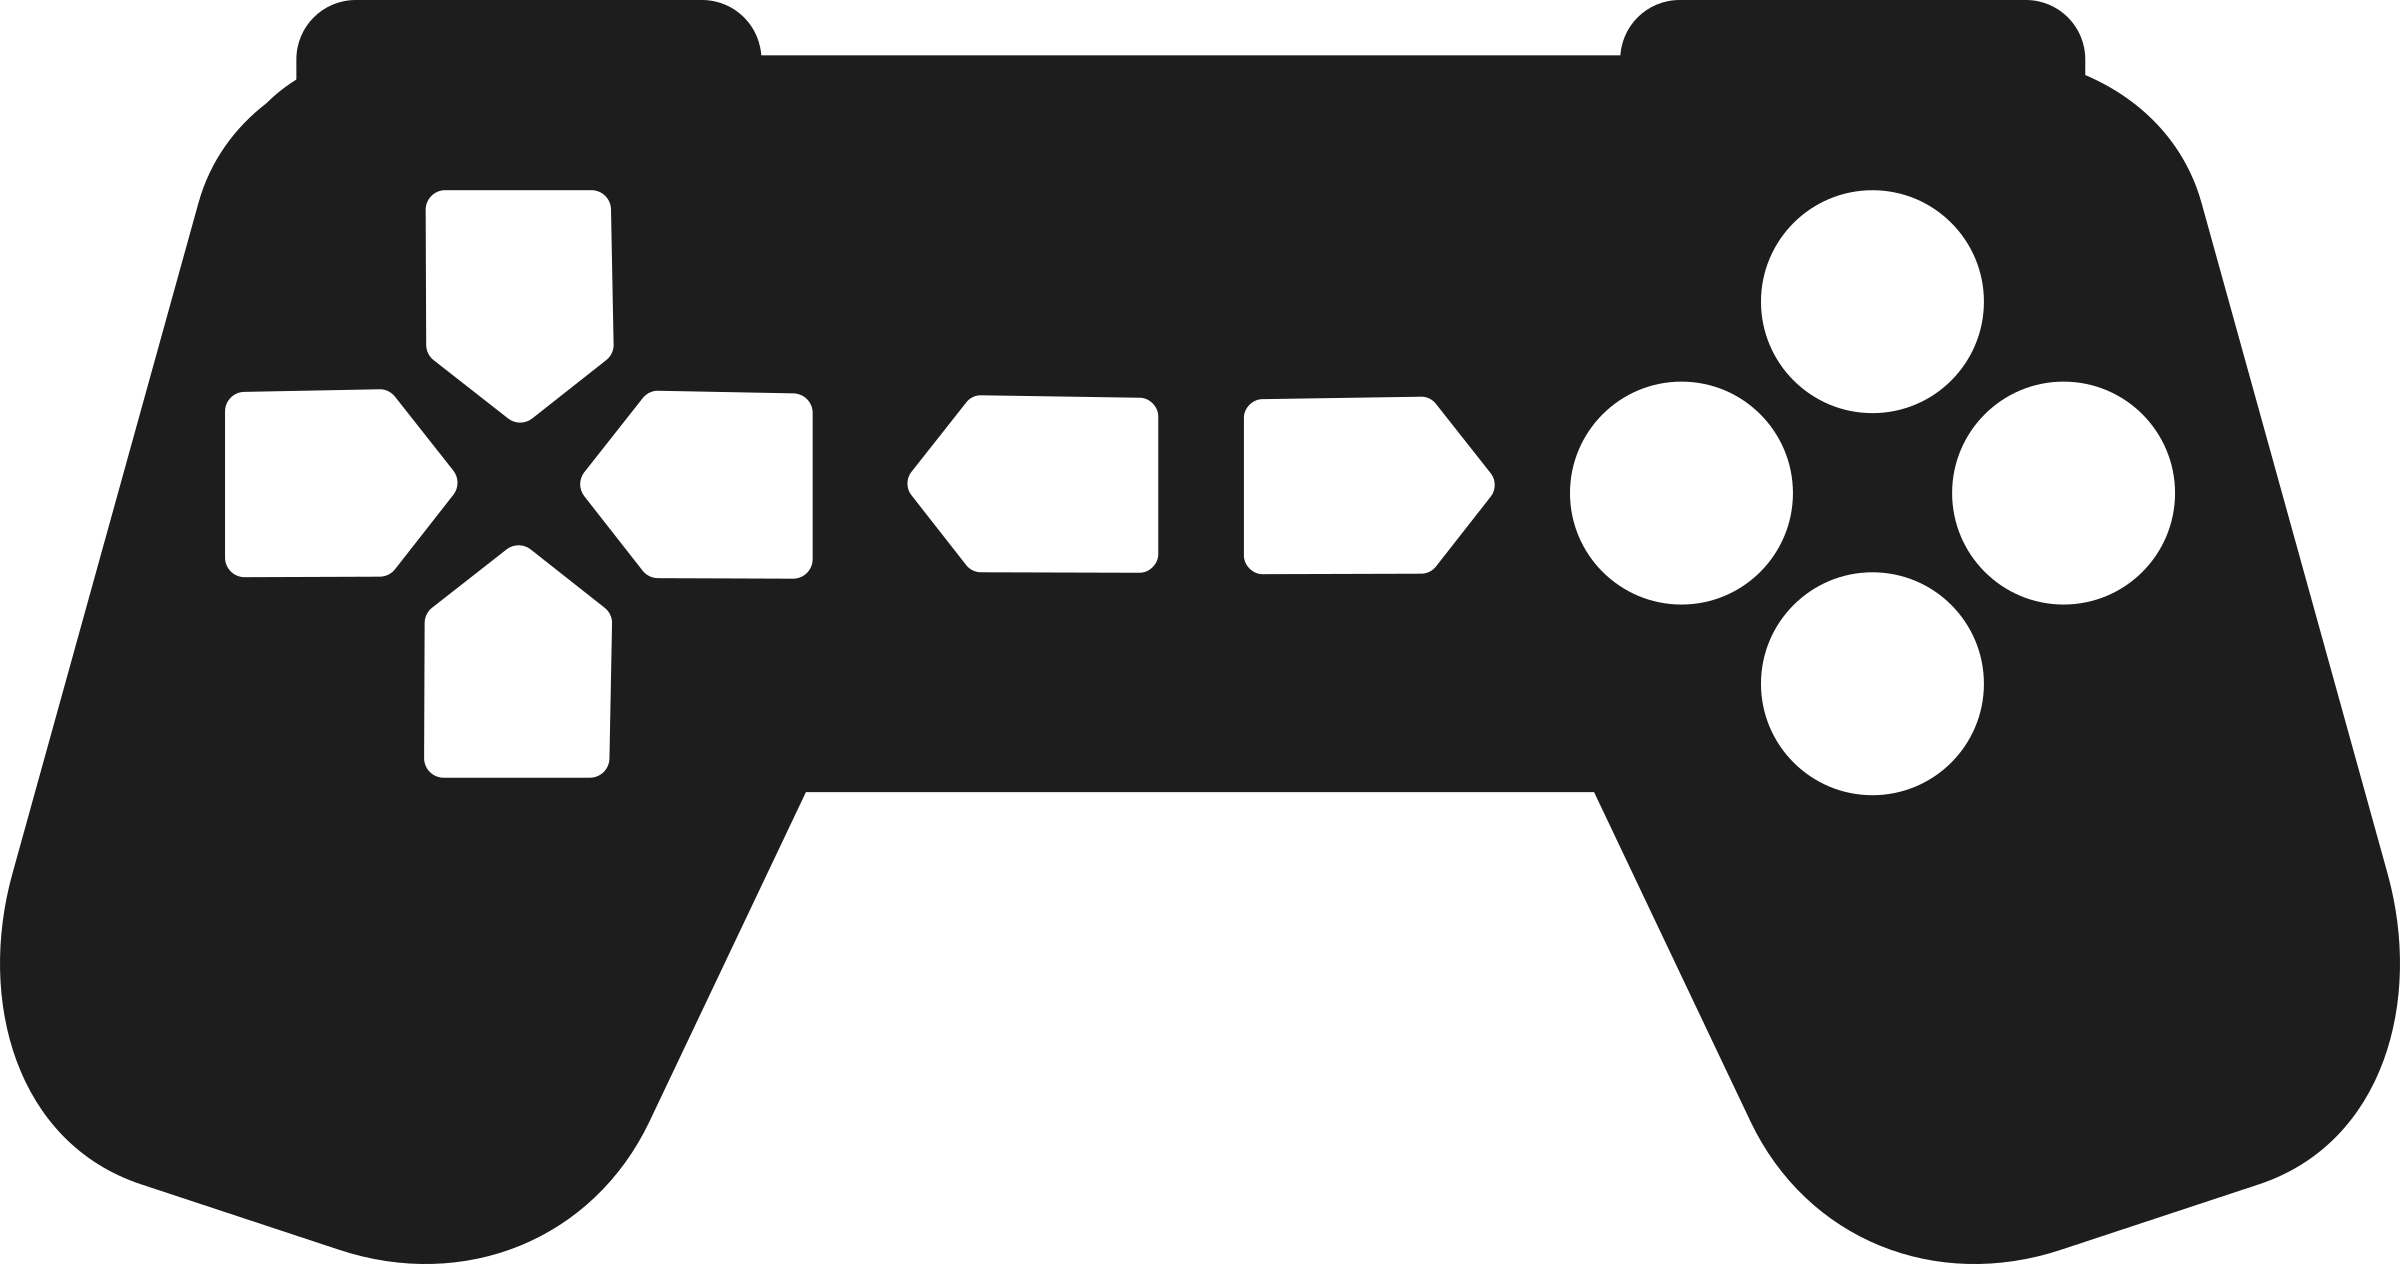 Clipart Game Controller Outline - Video game outline